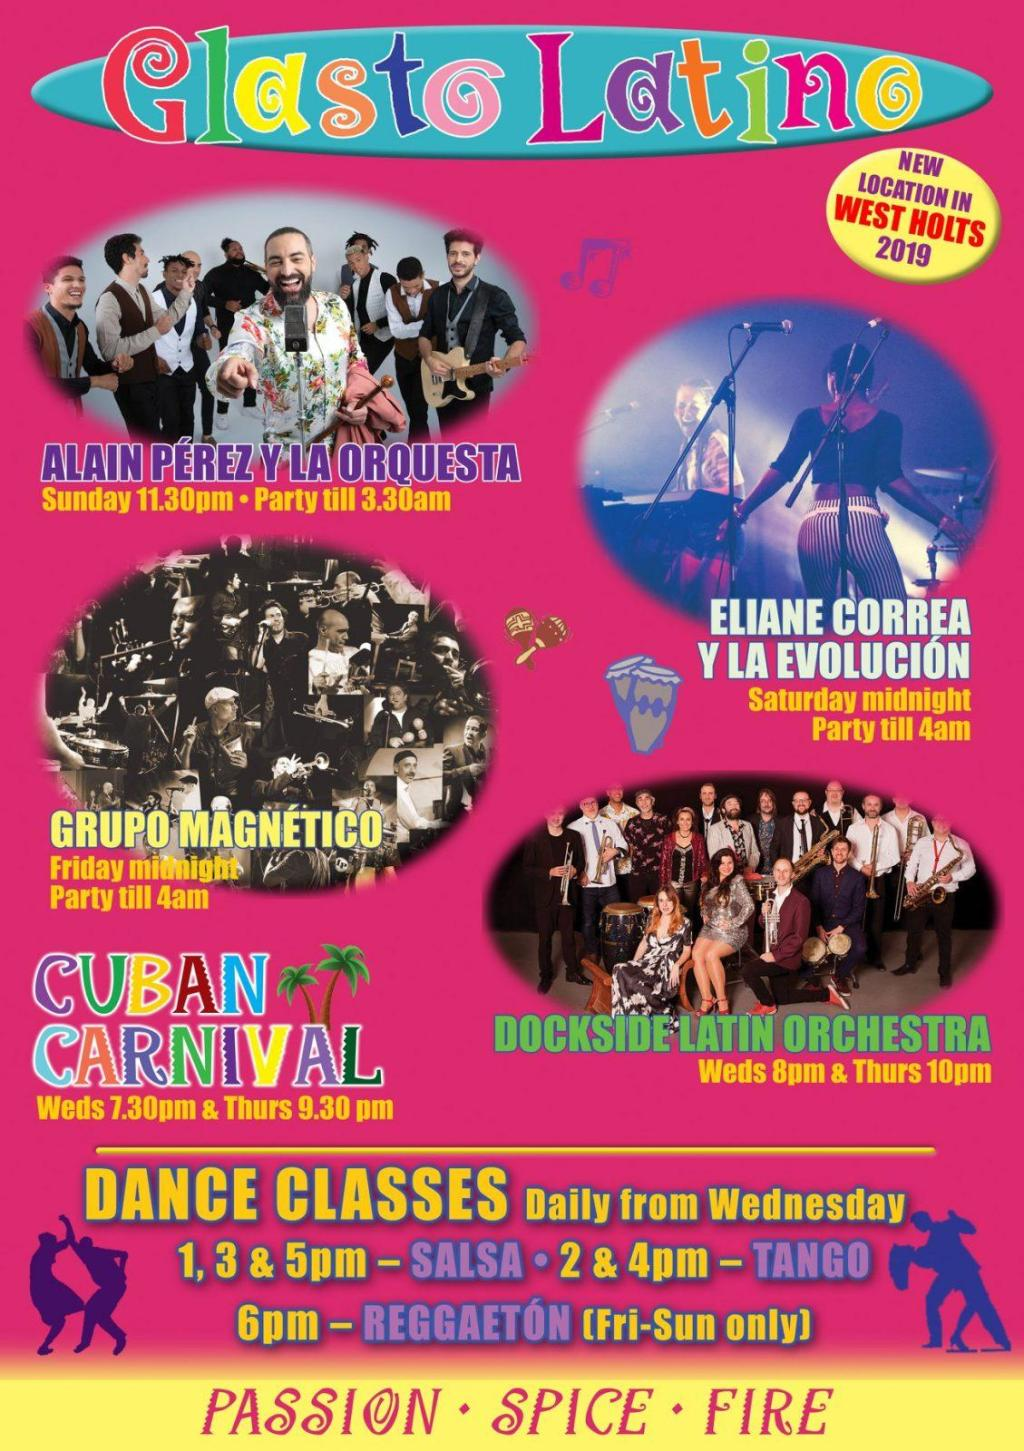 The wonderful Glasto Latino stage is bringing its passion, spice and fire to a n...